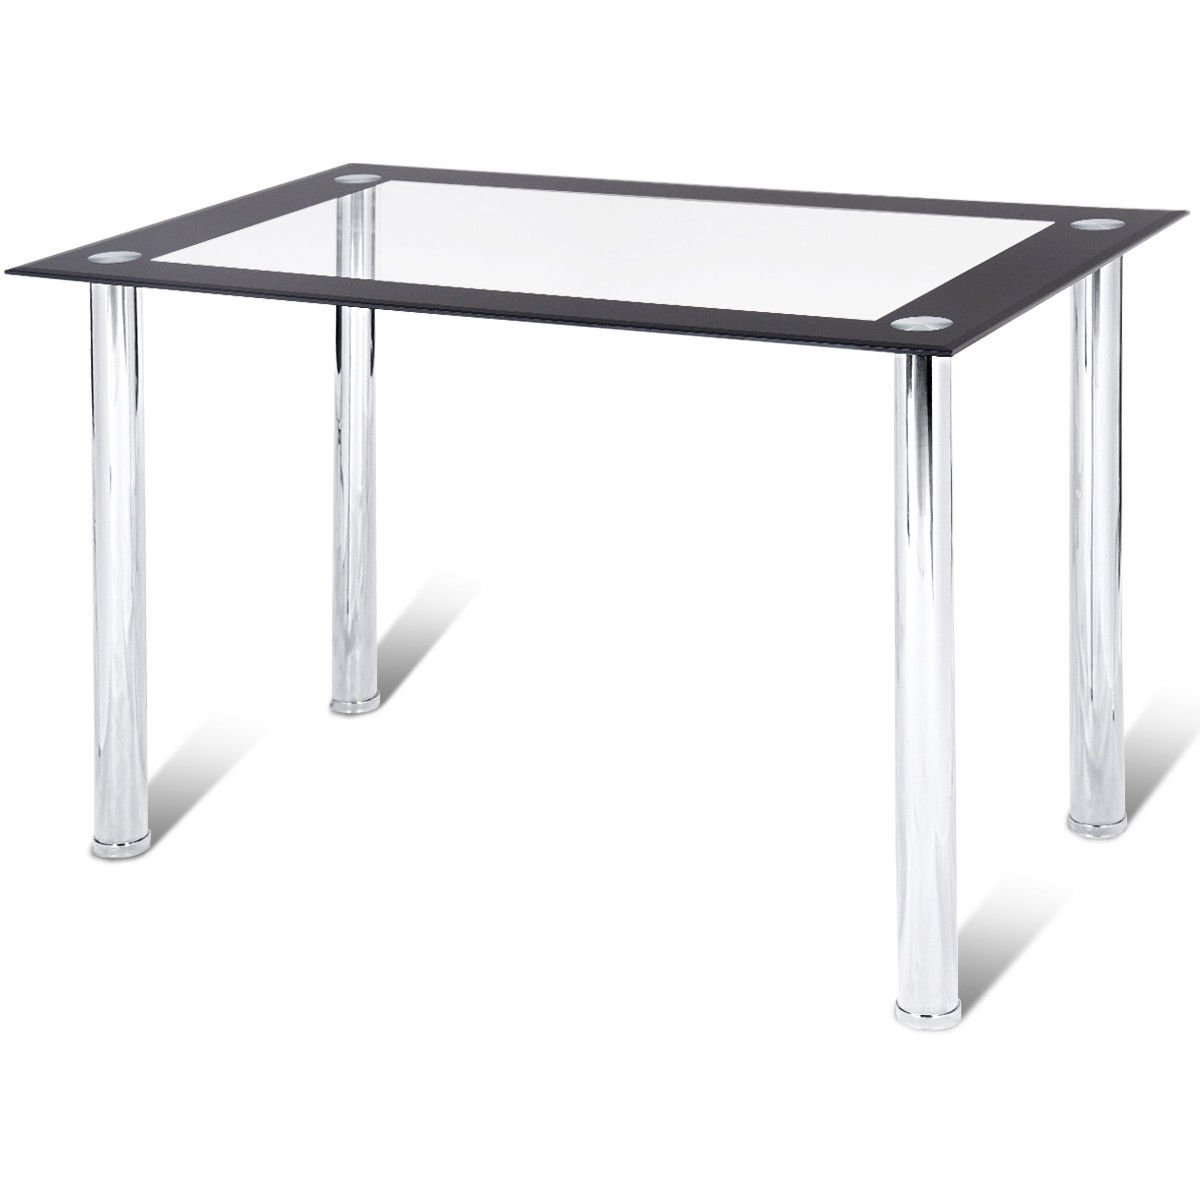 Tangkula Dining Table Modern Leisure Home Kitchen Glass Top Tea Table Office Conference Pedestal Desk